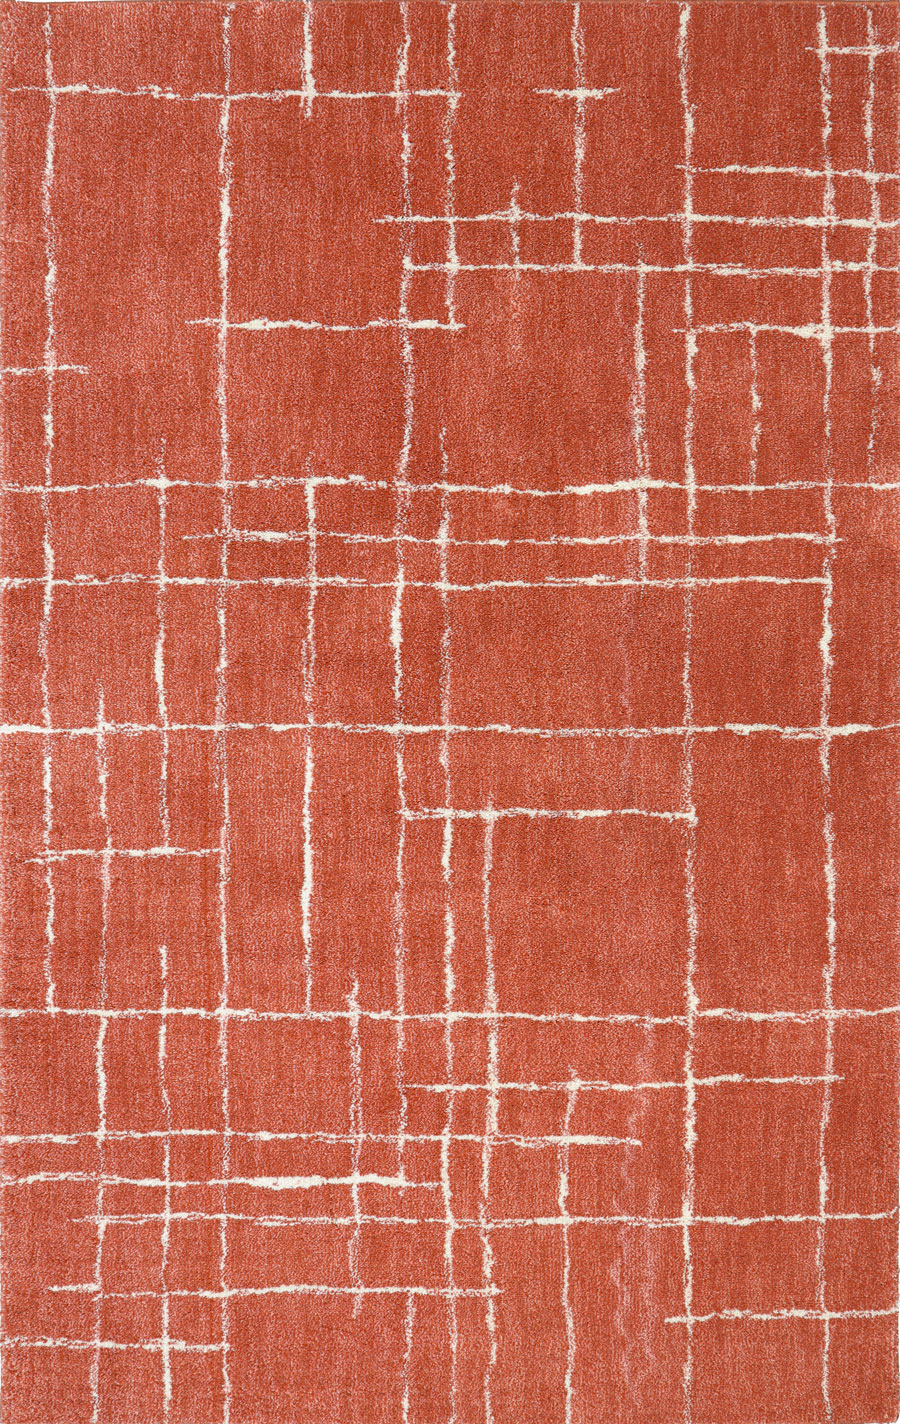 Berkshire Chatham Coral 90635 20038 Area Rug By American